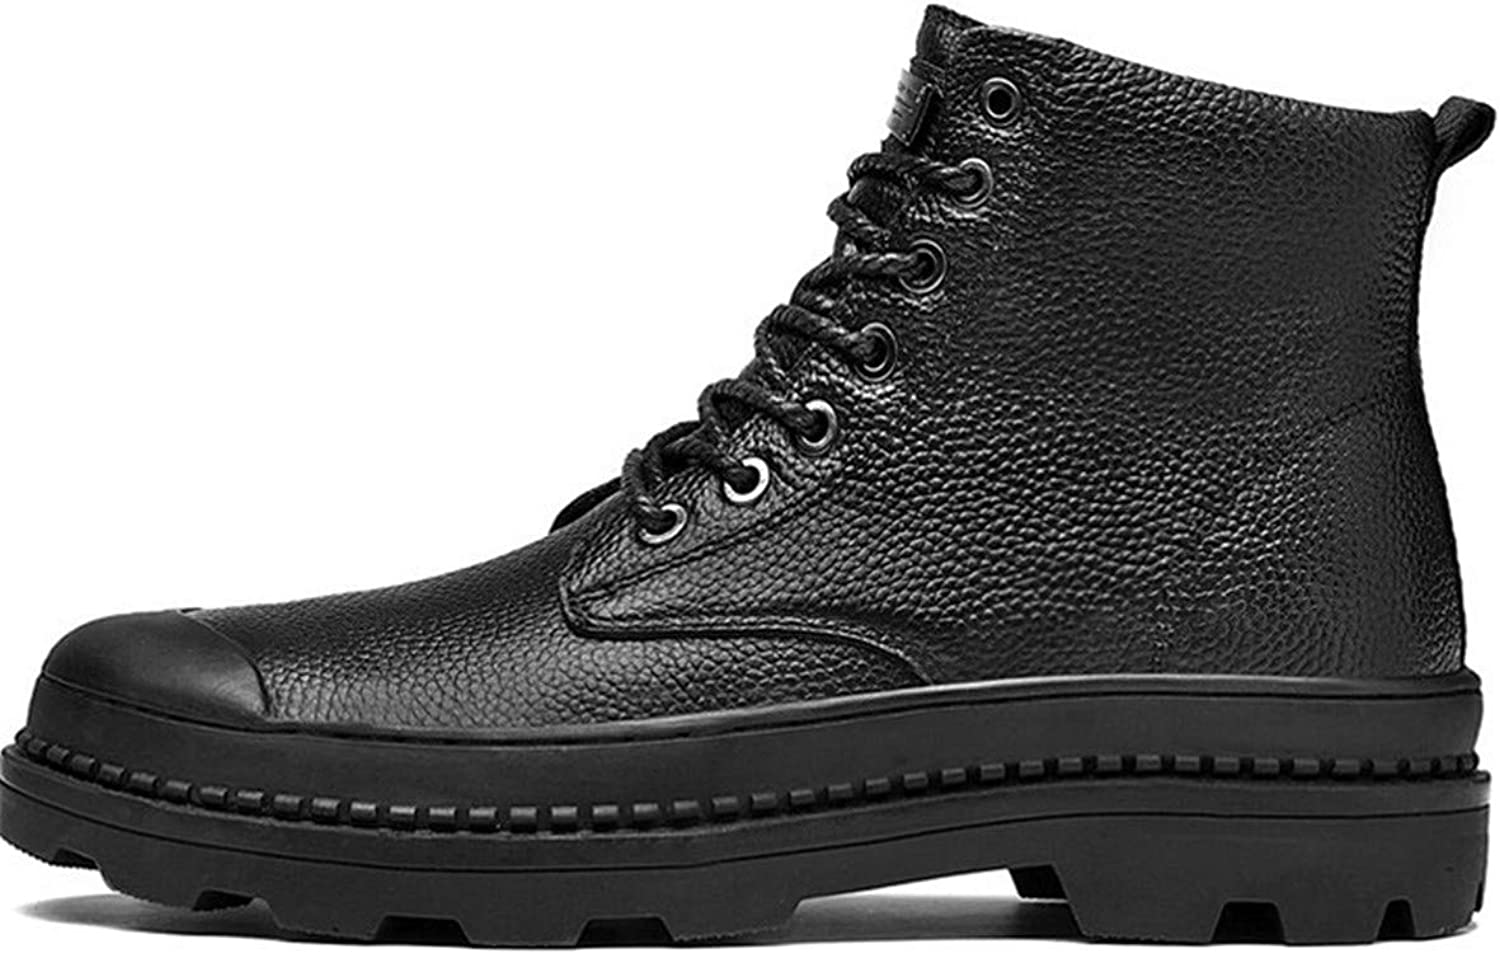 HHXWU Men's shoes Martin boots plus velvet leather tooling shoes snow boots outdoor large size